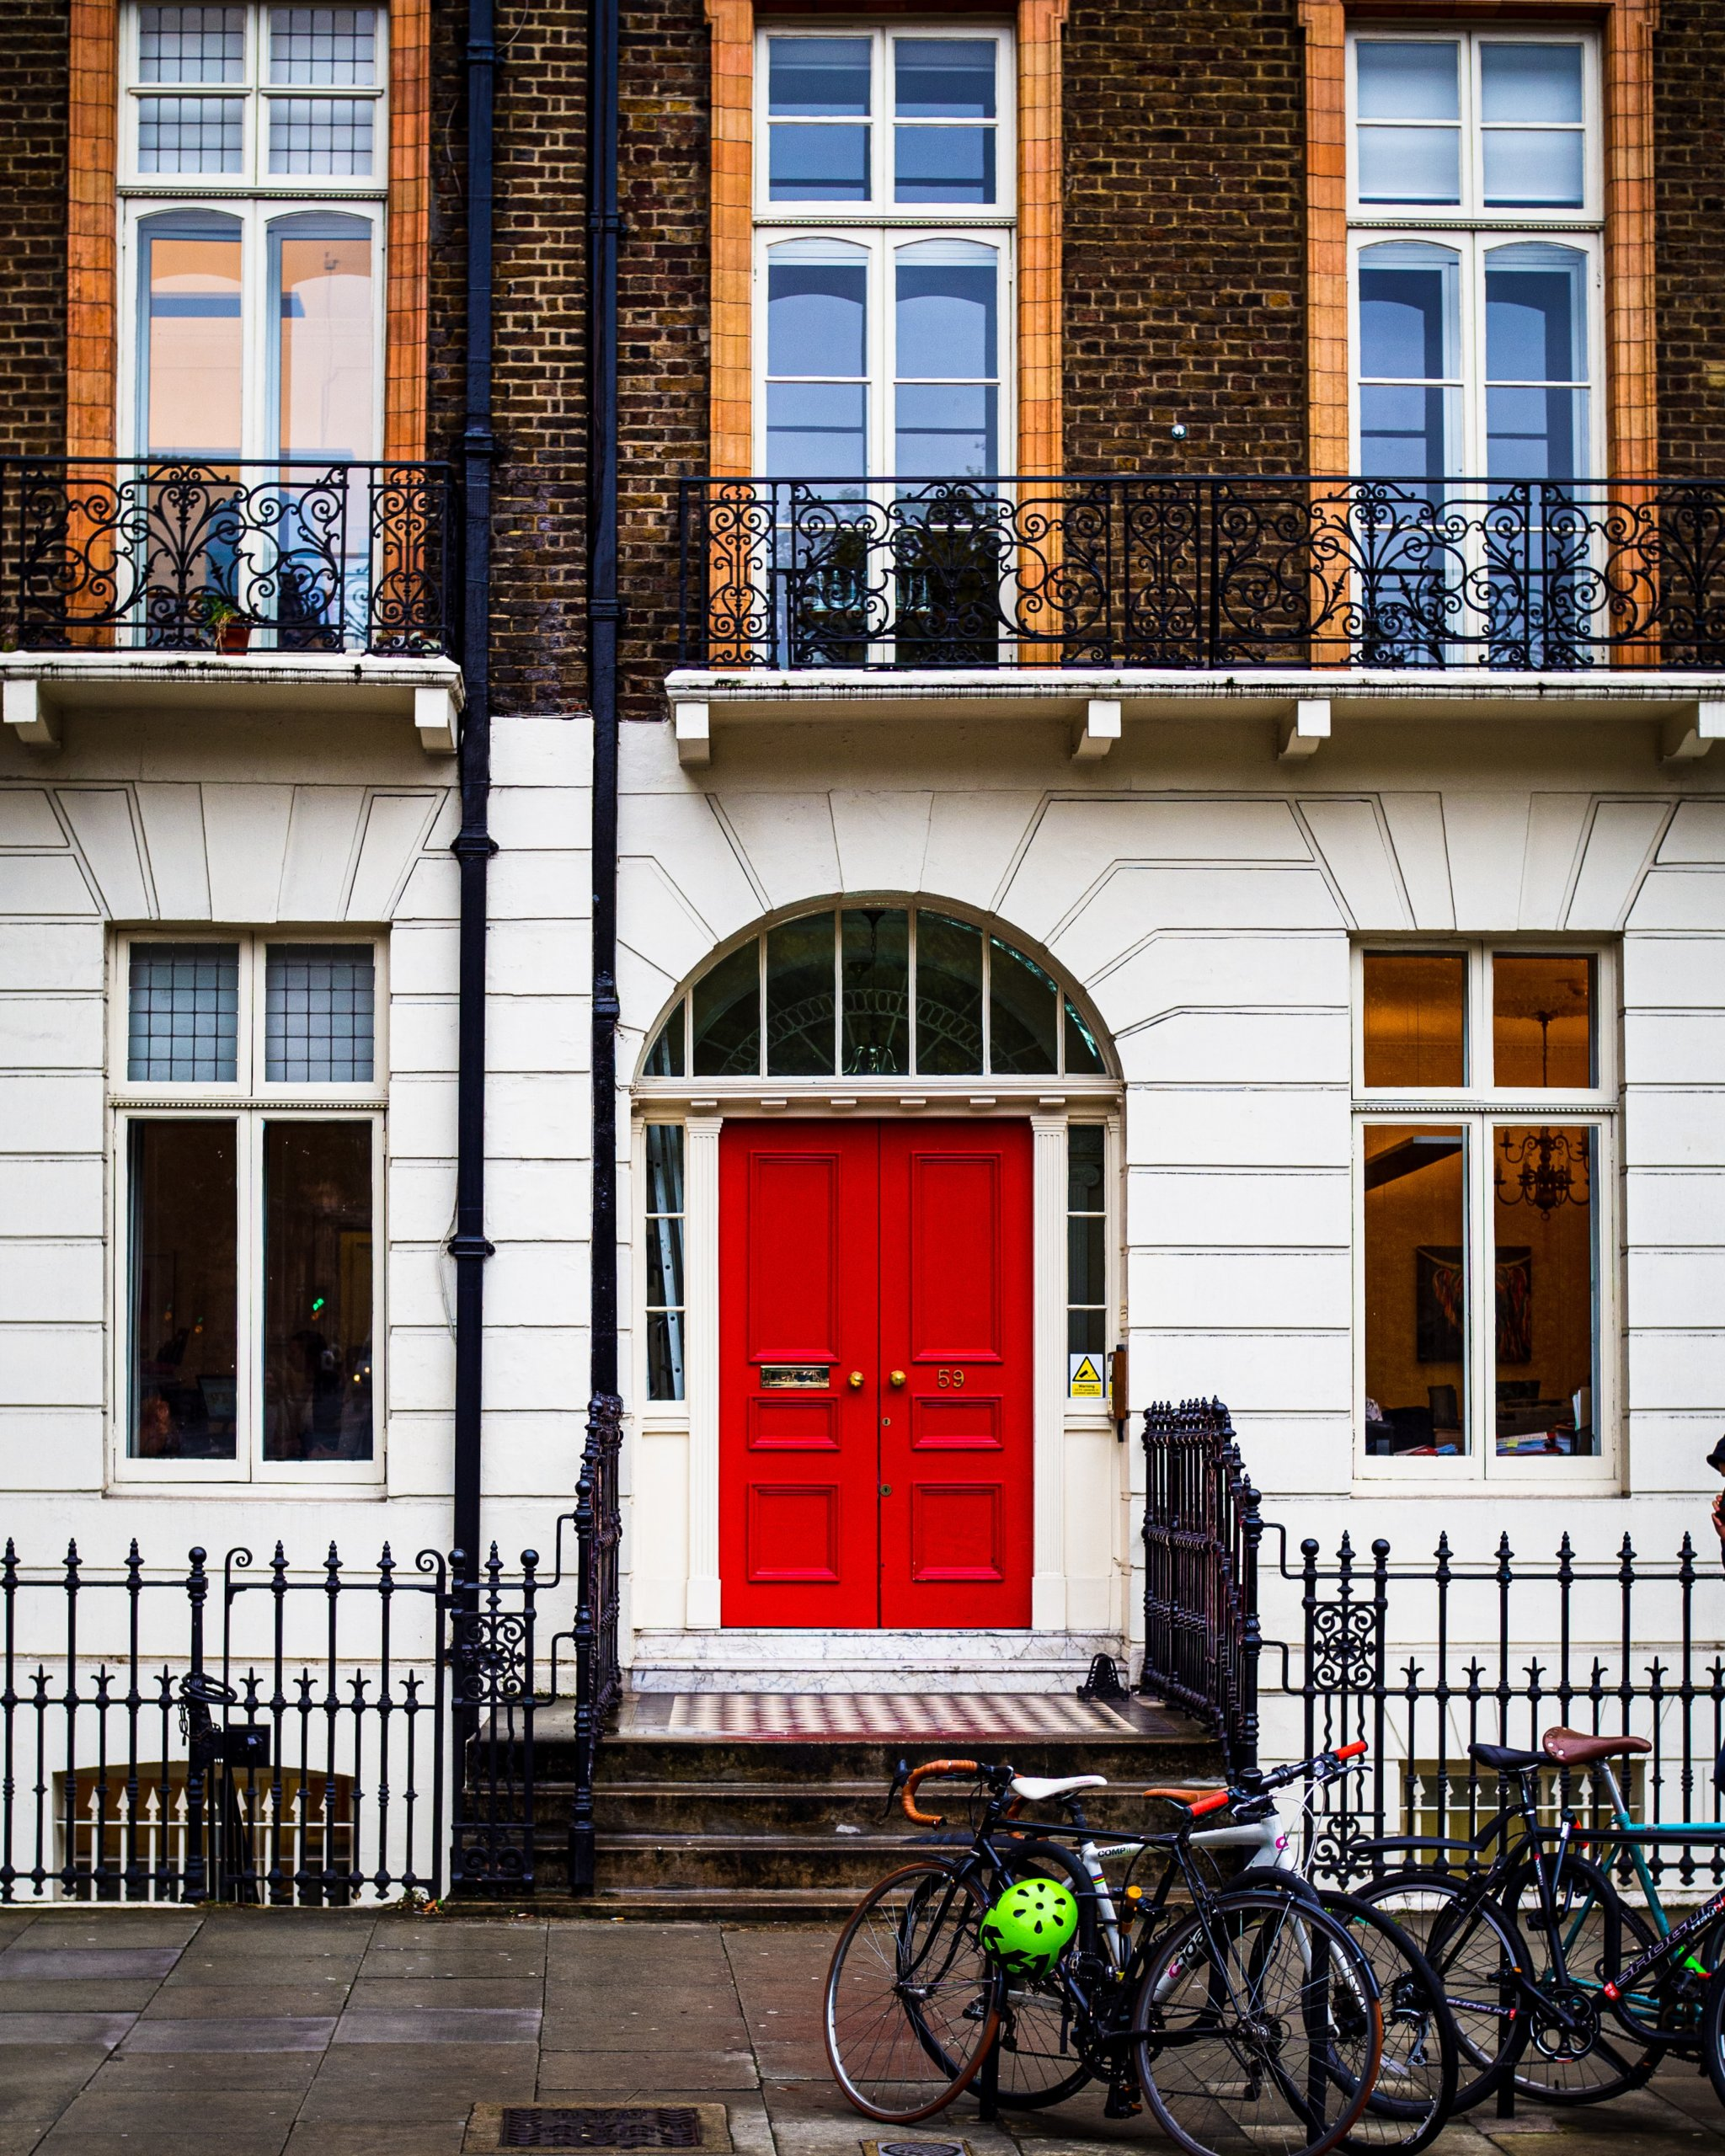 Front house with red door and bicycles